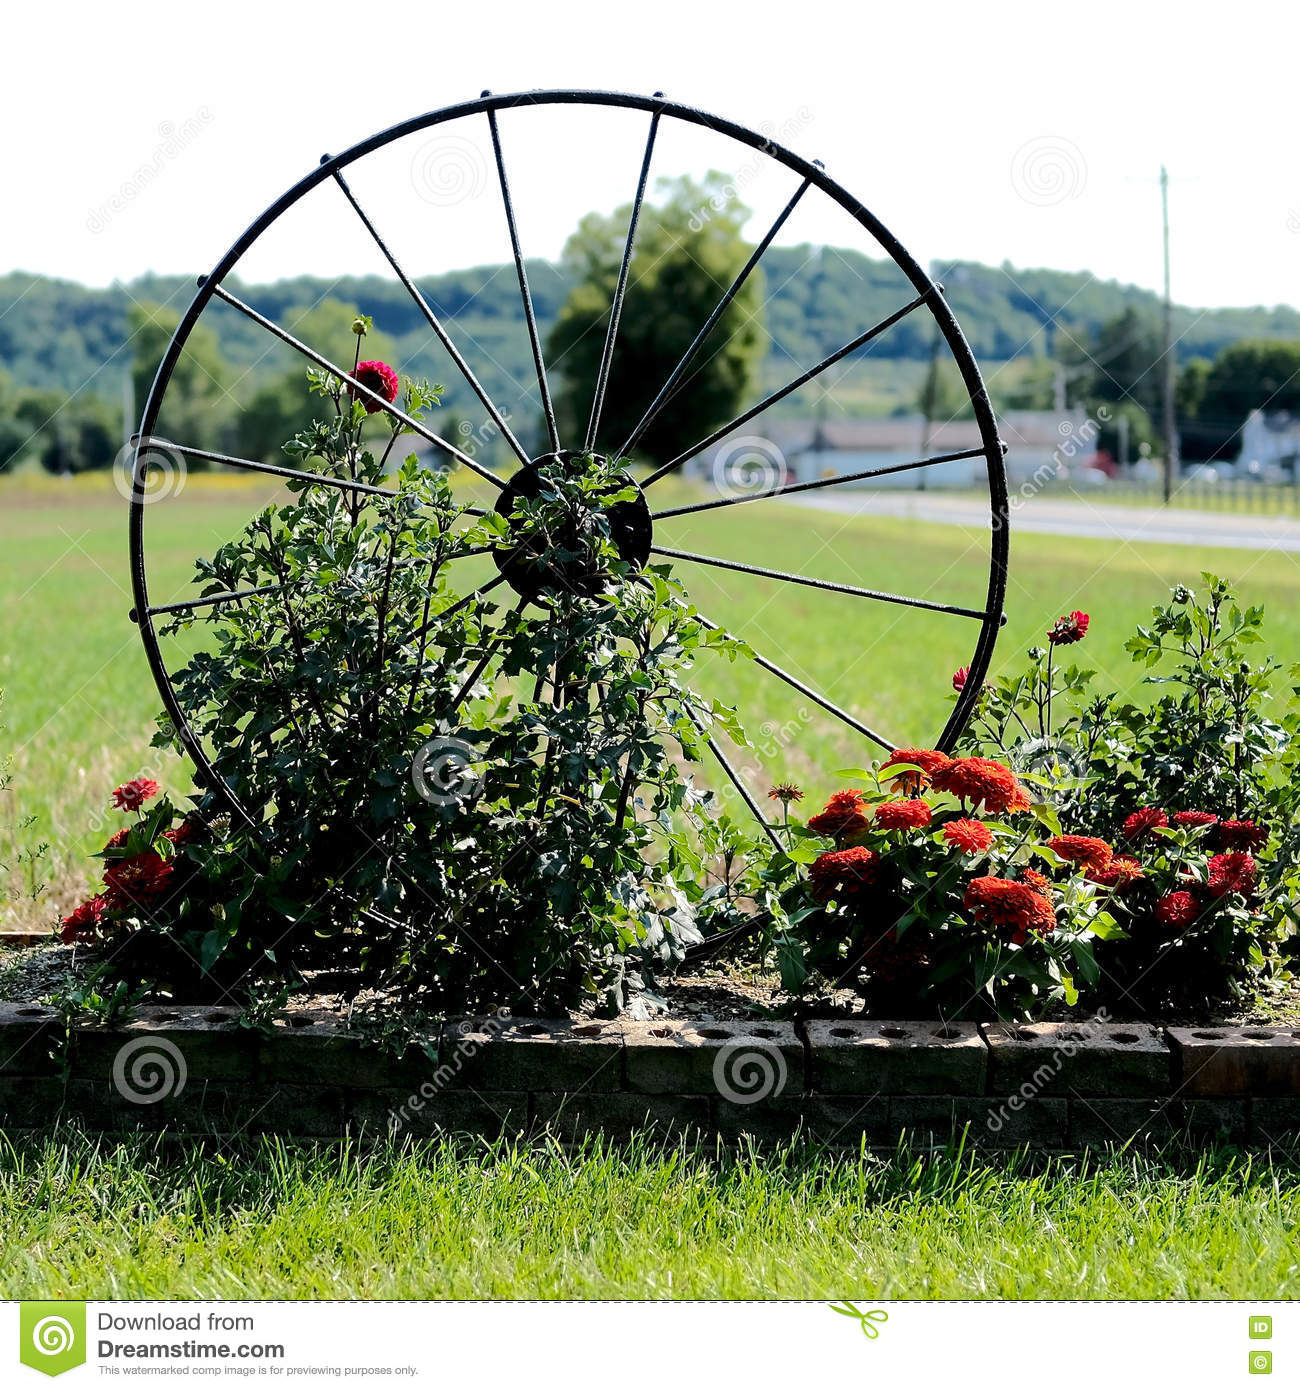 Spoked Wheel Garden Decoration Stock Photo Image Of Lawn Planter 78888668